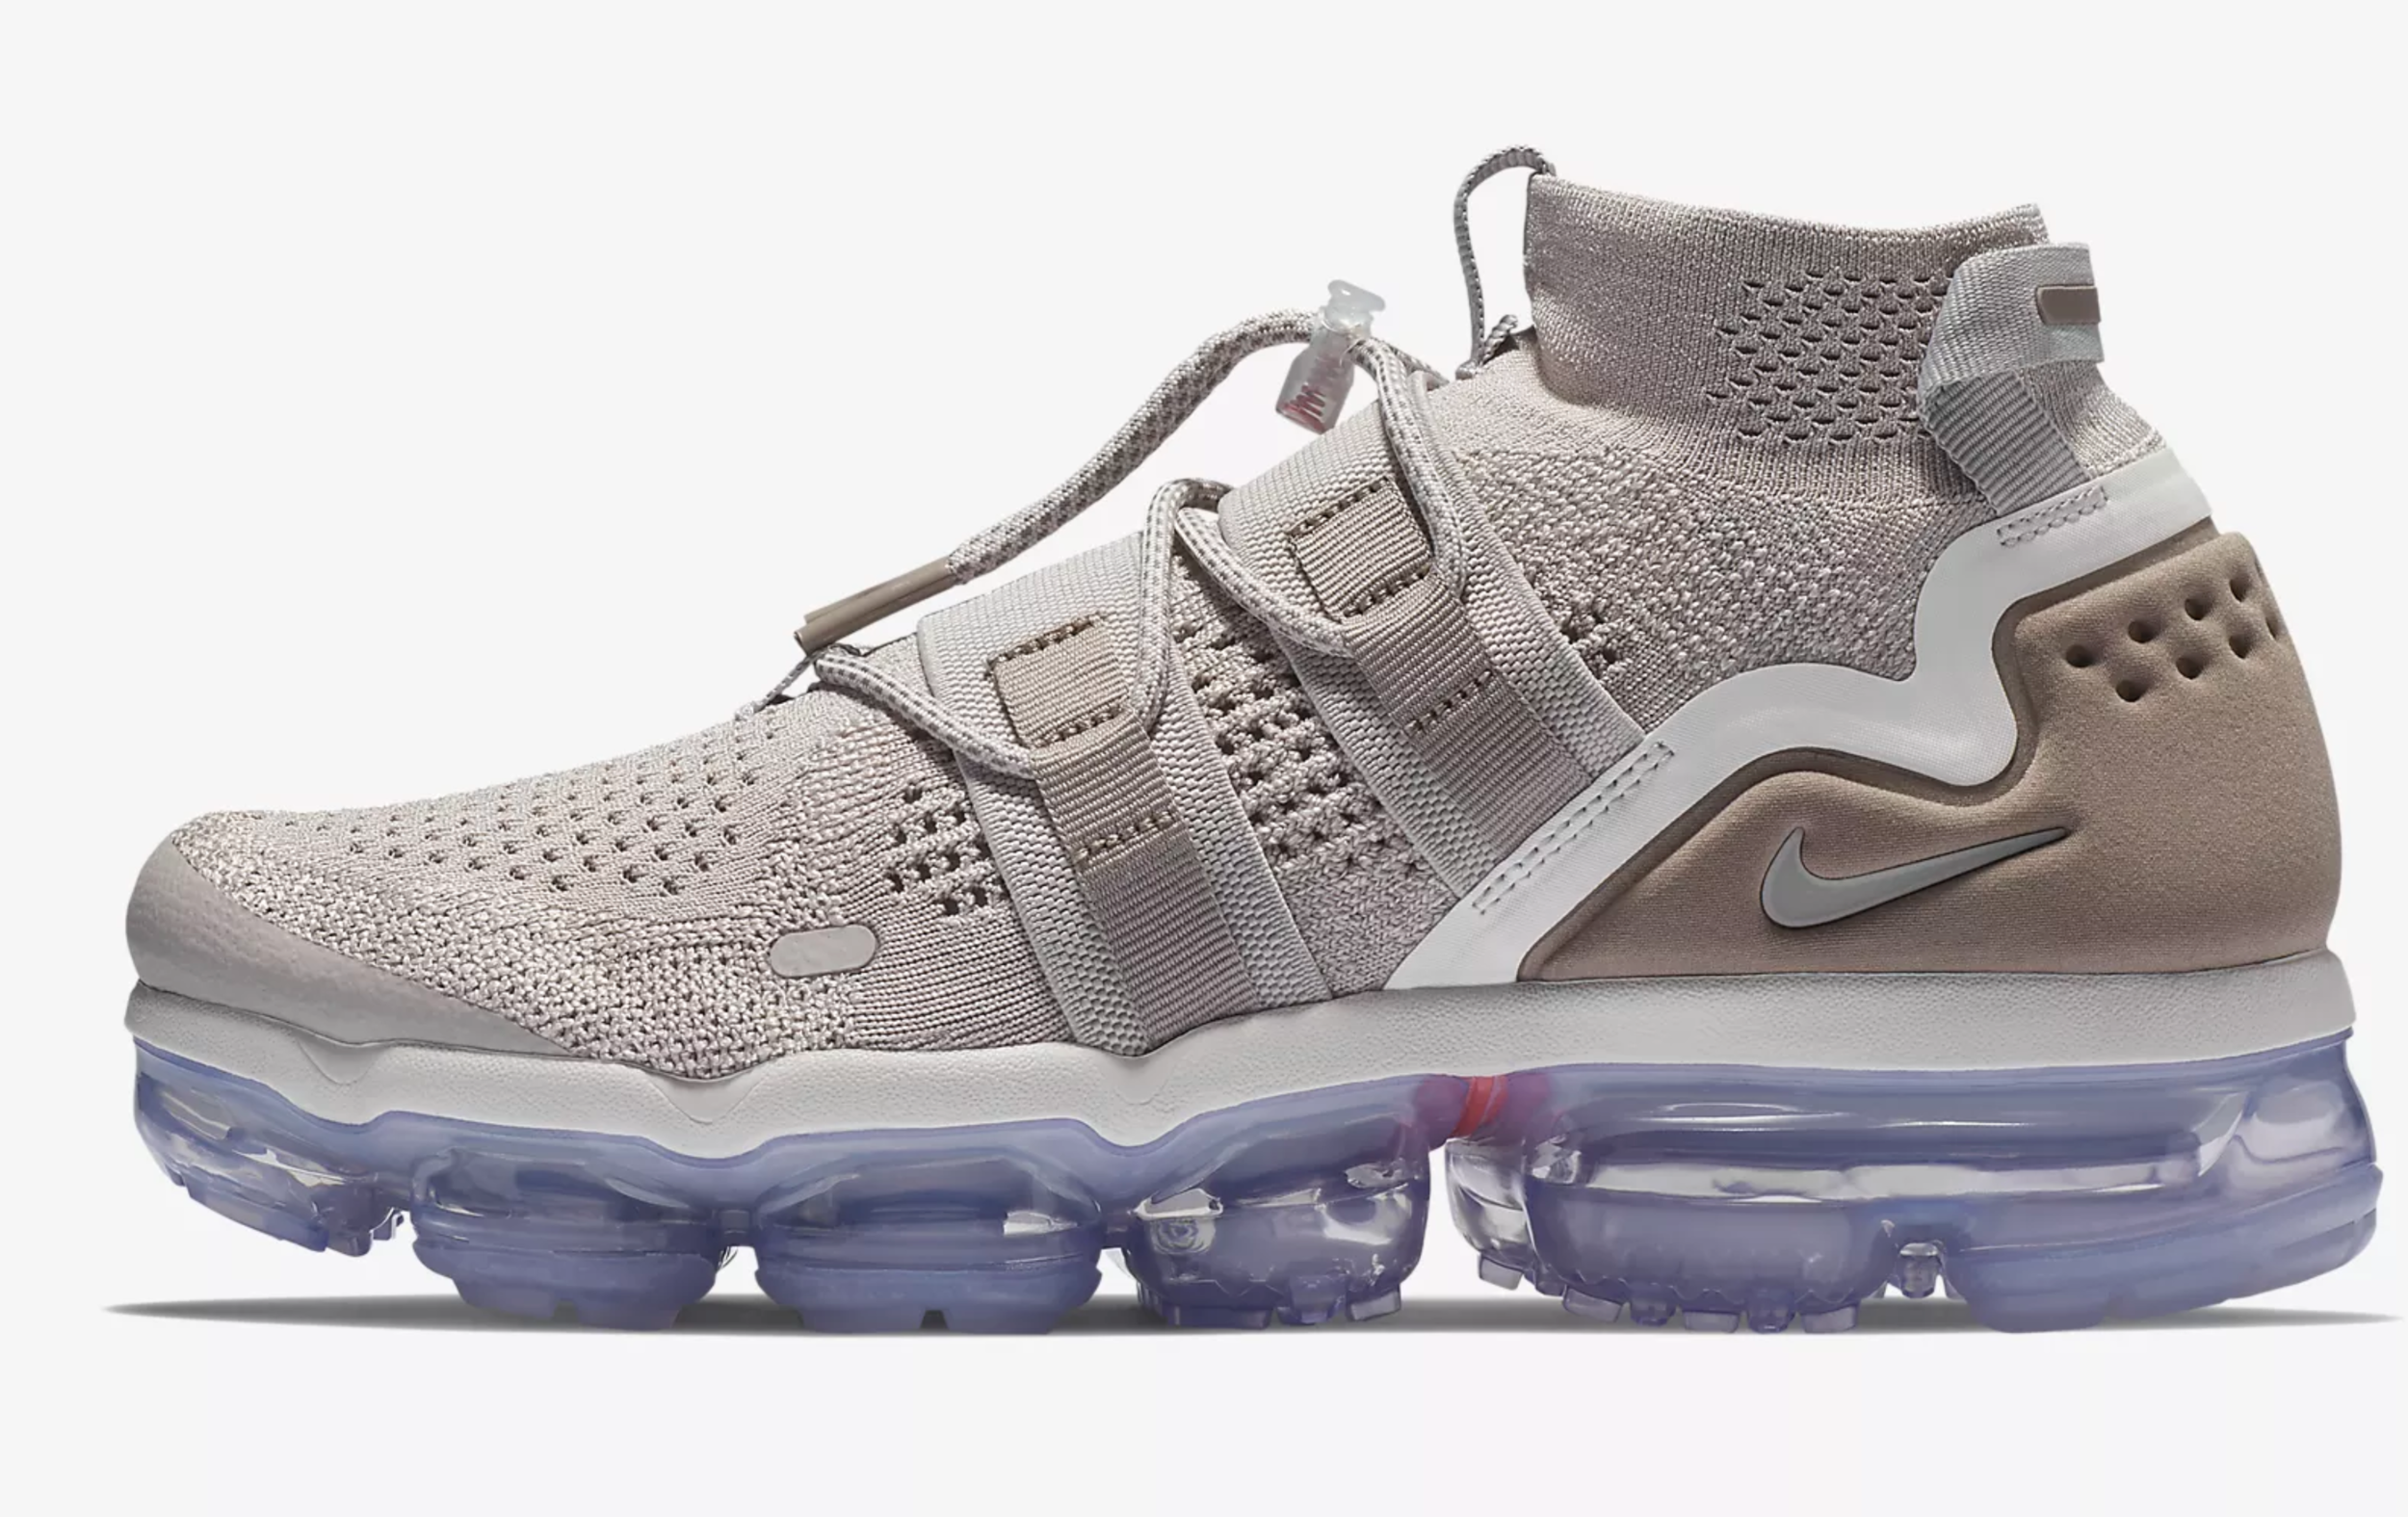 Nike Air Vapormax Flyknit utility - The sock like top adds a great support and soft cushion around the ankle. This will be your go-to gym shoe. ($225)